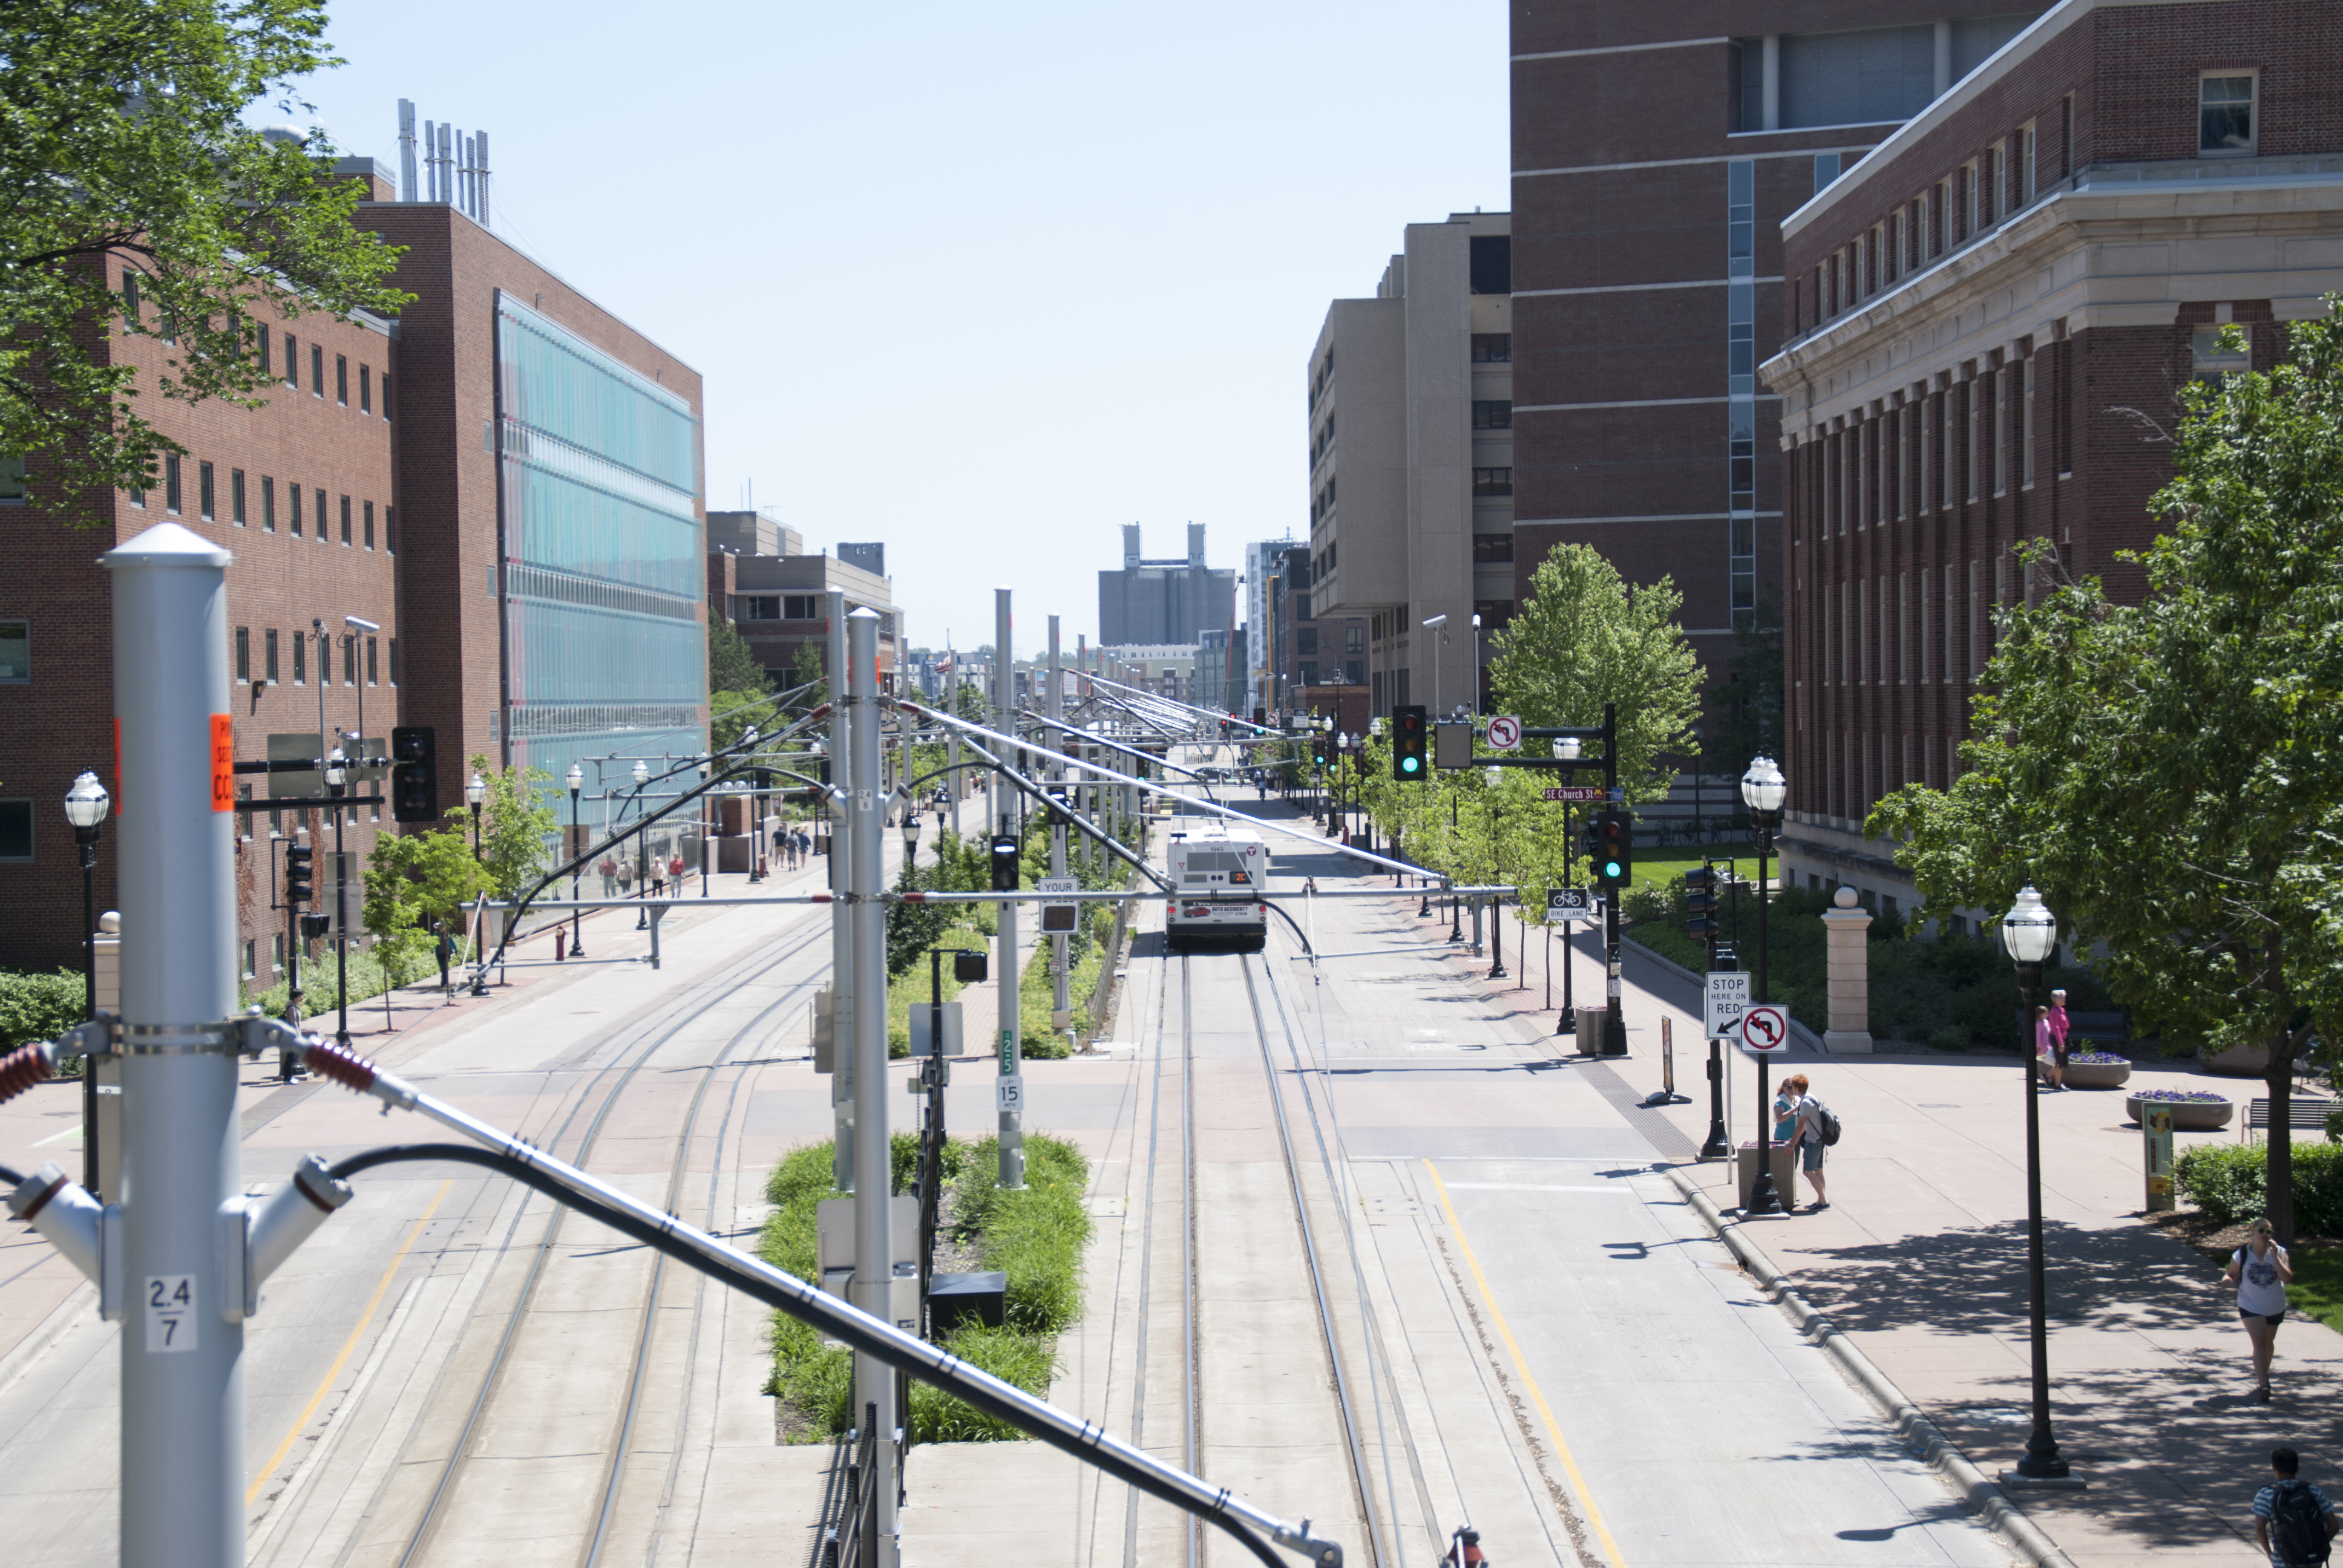 Washington St, Minneapolis (credit: MetroTransit)